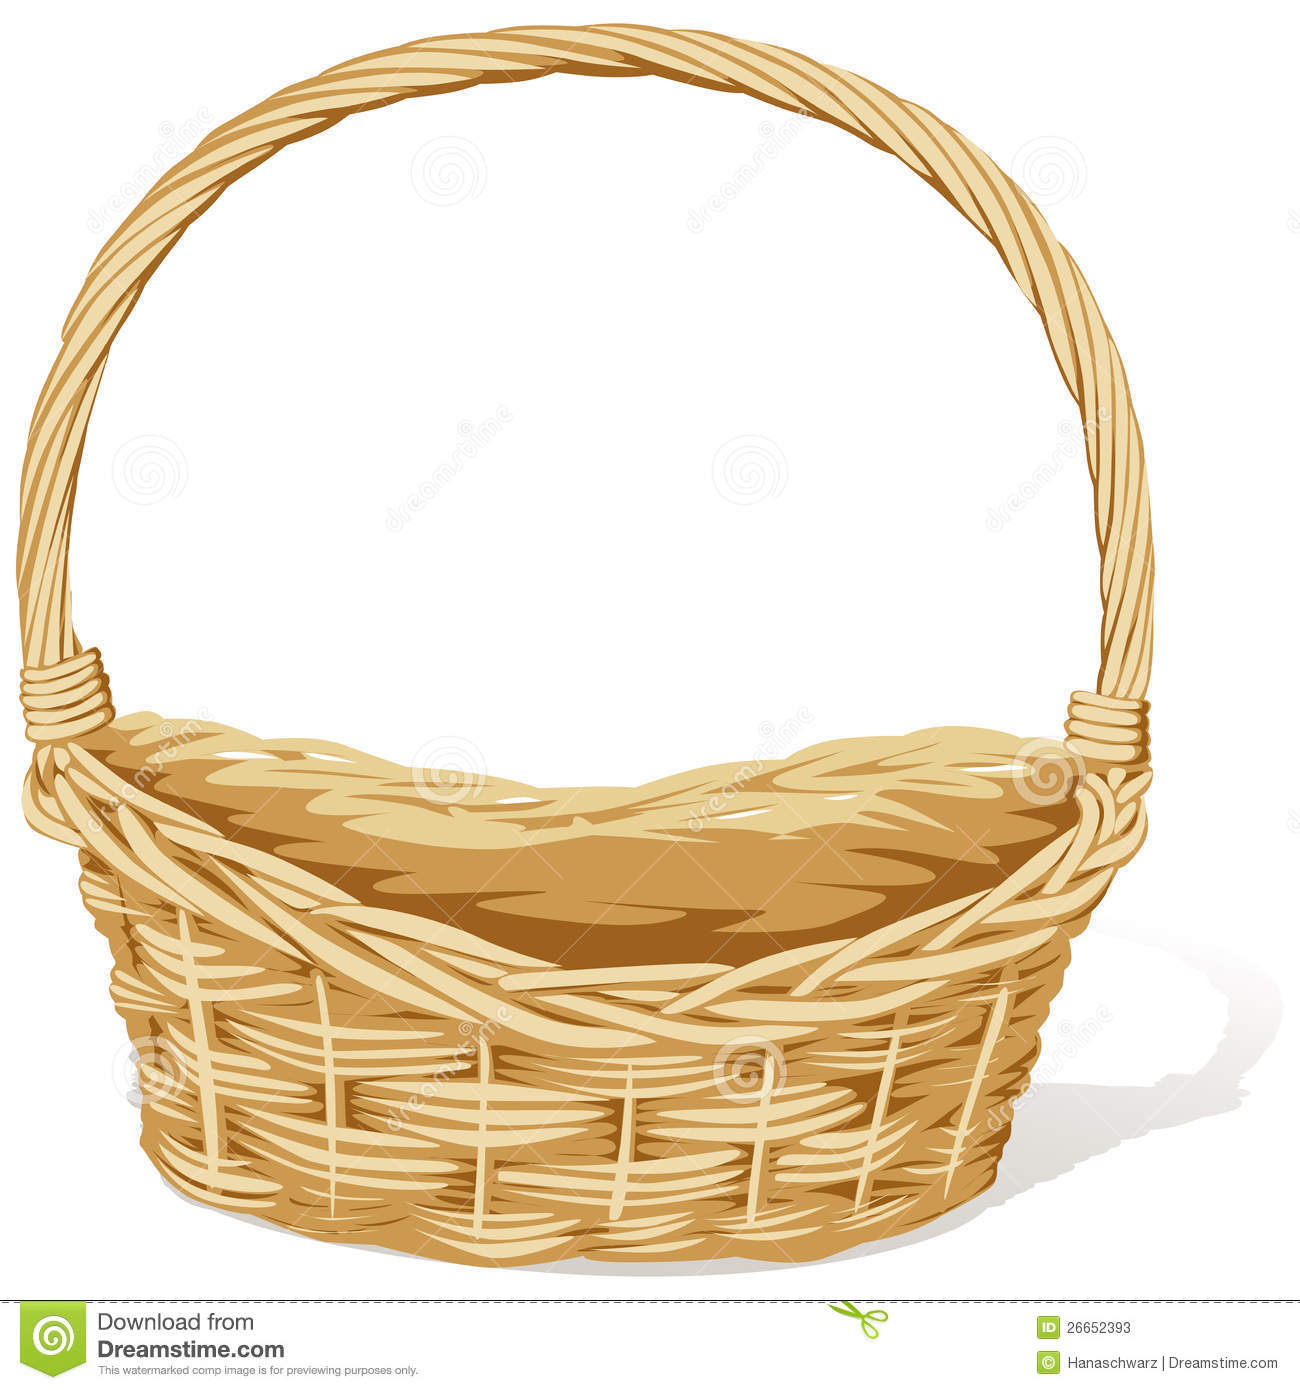 Empty easter basket clipart clip transparent library Empty Easter Basket Clipart - Clipart Kid clip transparent library